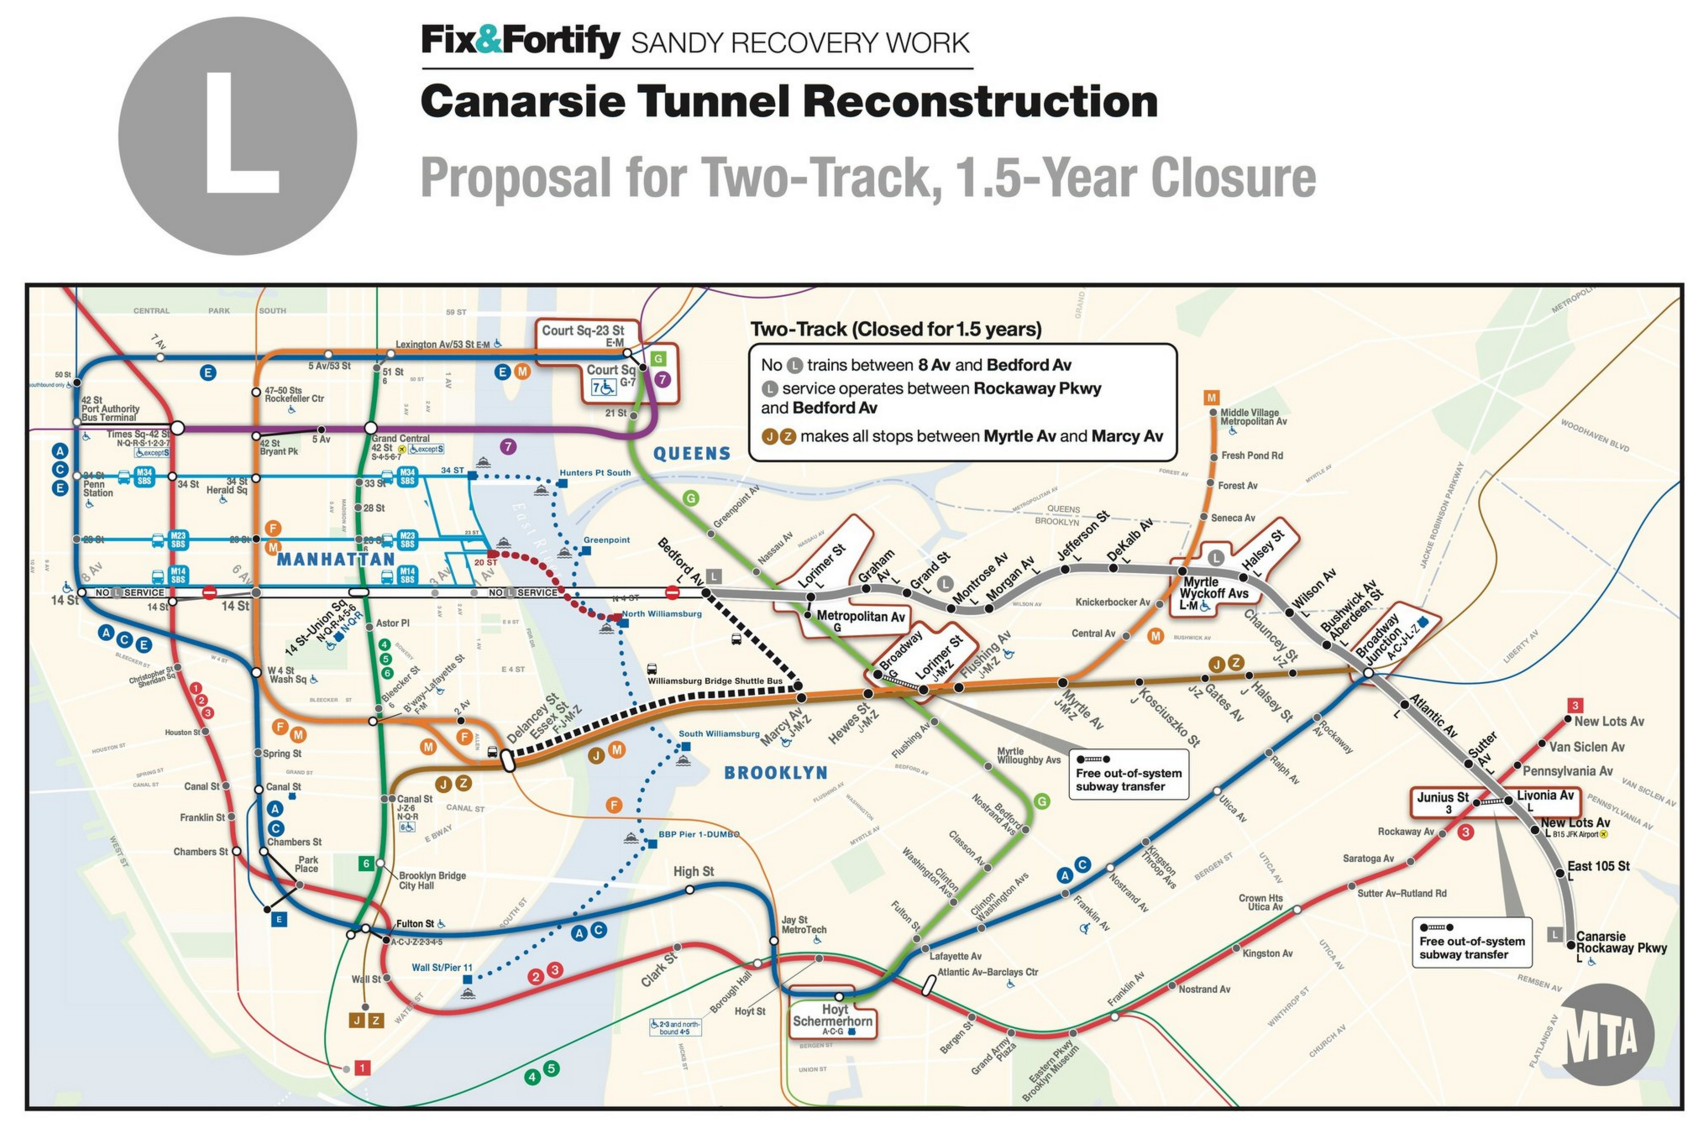 The eighteen-month, full shutdown plan for the L train. image via MTA